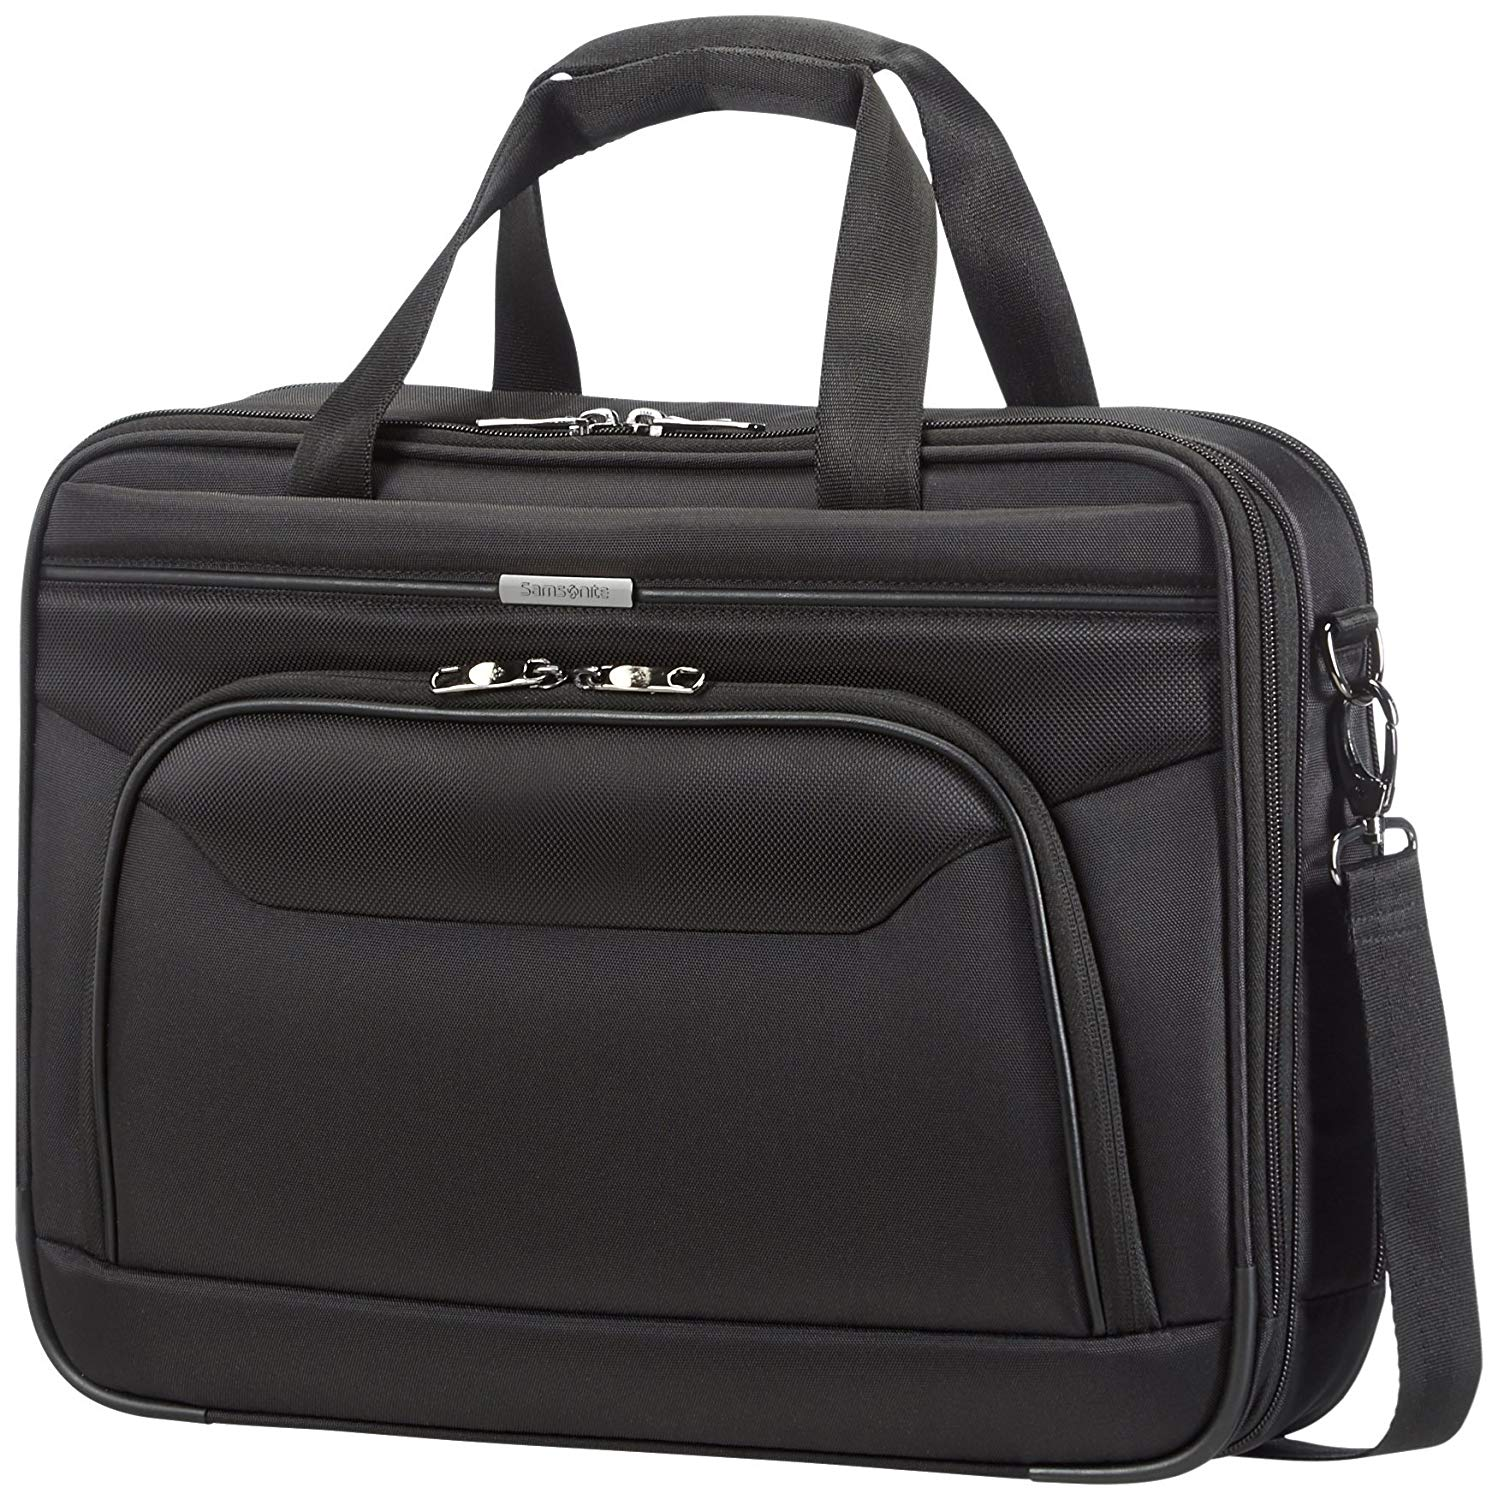 cartable samsonite